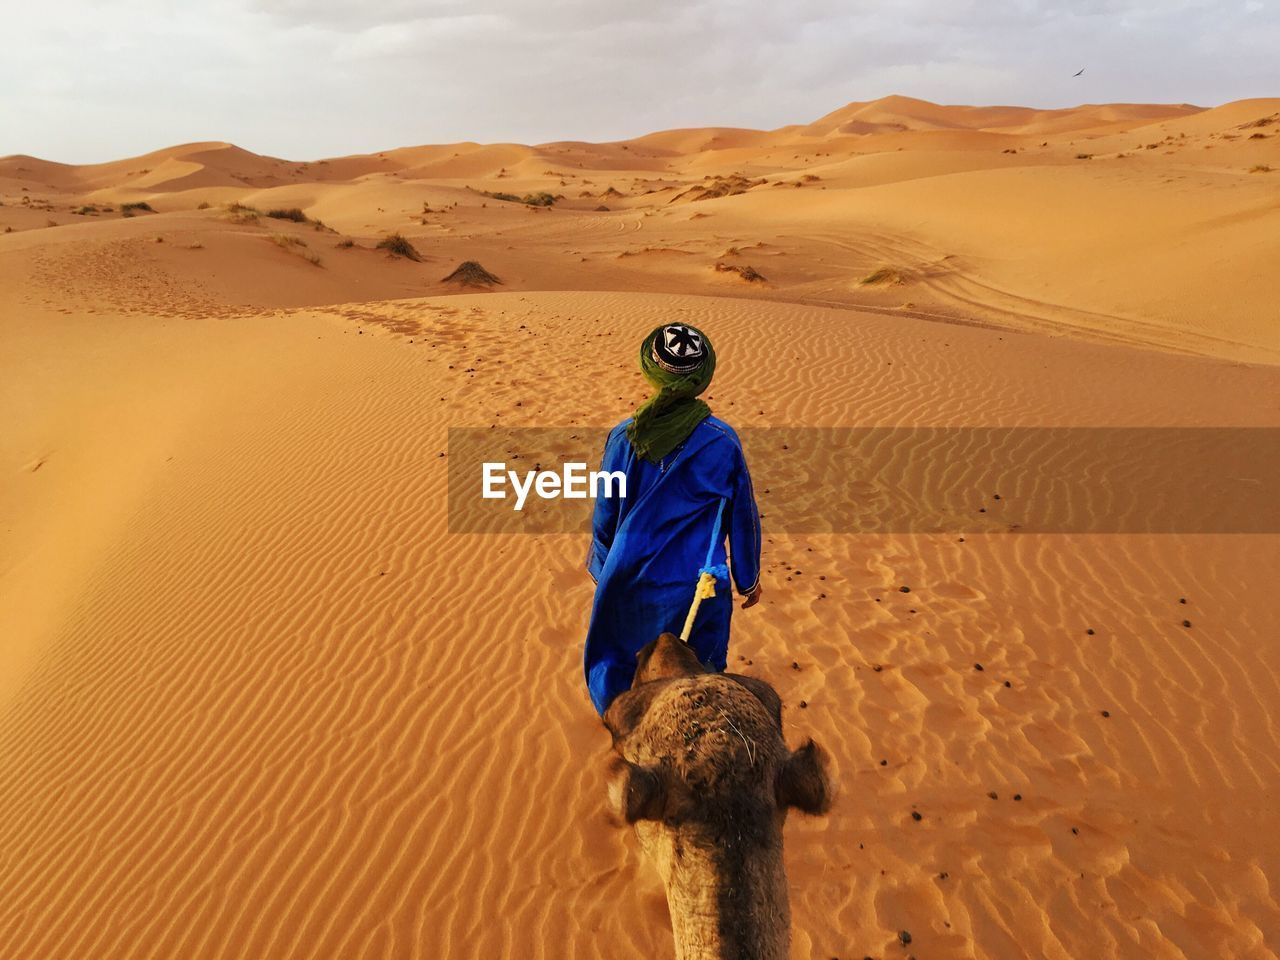 Rear View Of Man With Camel Walking On Desert